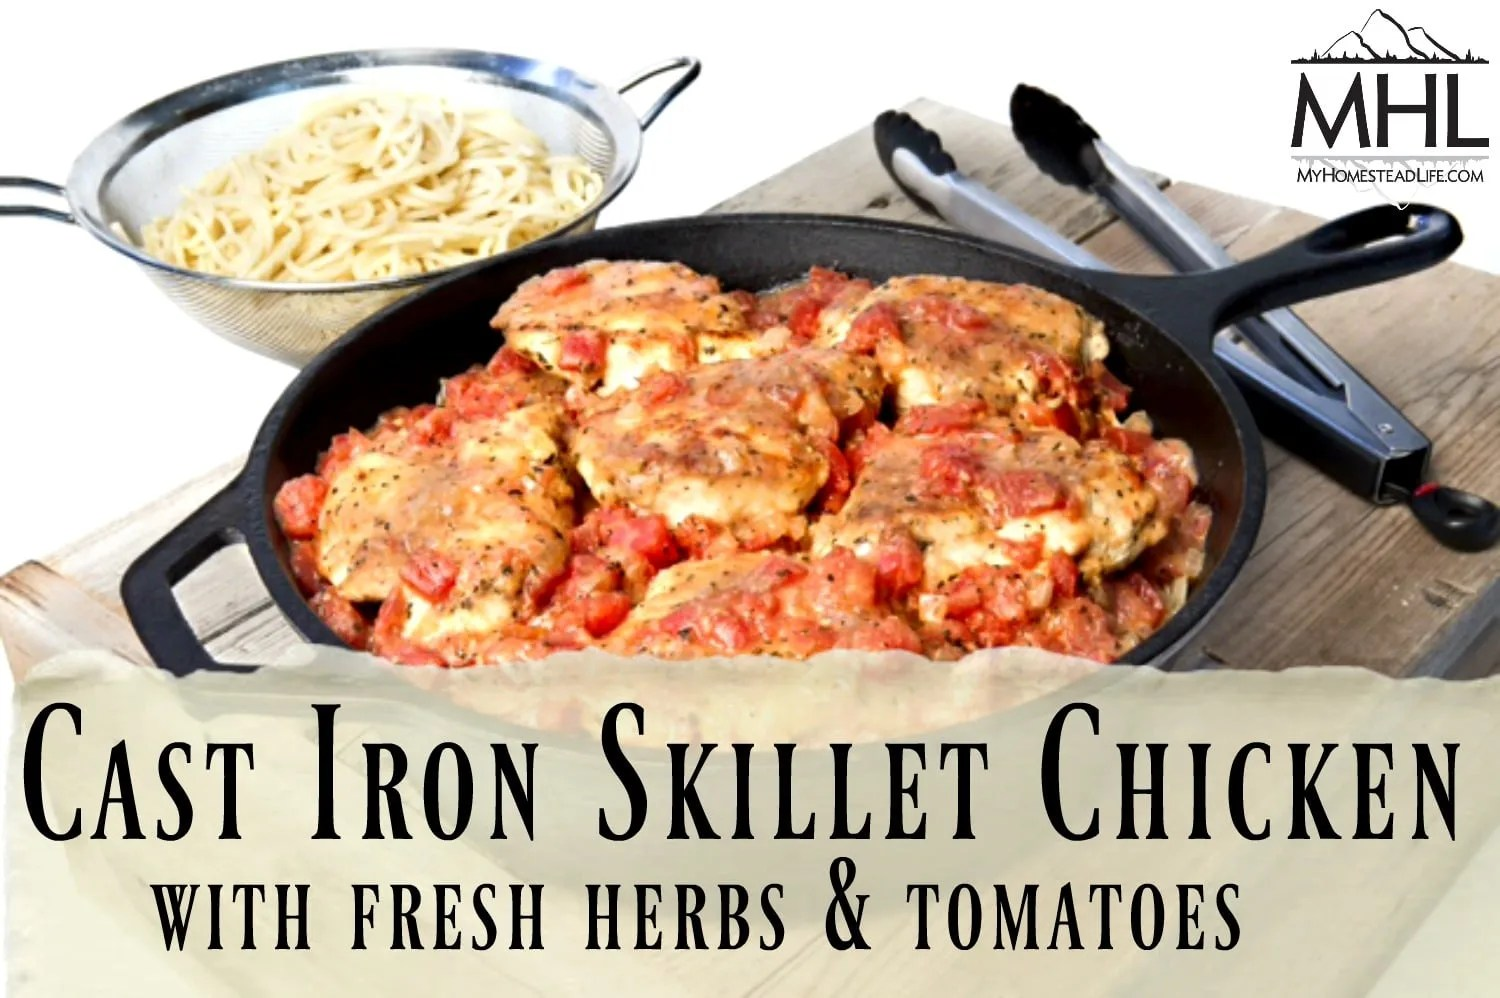 Cast Iron Skillet Chicken- Fresh Herbs & Tomatoes